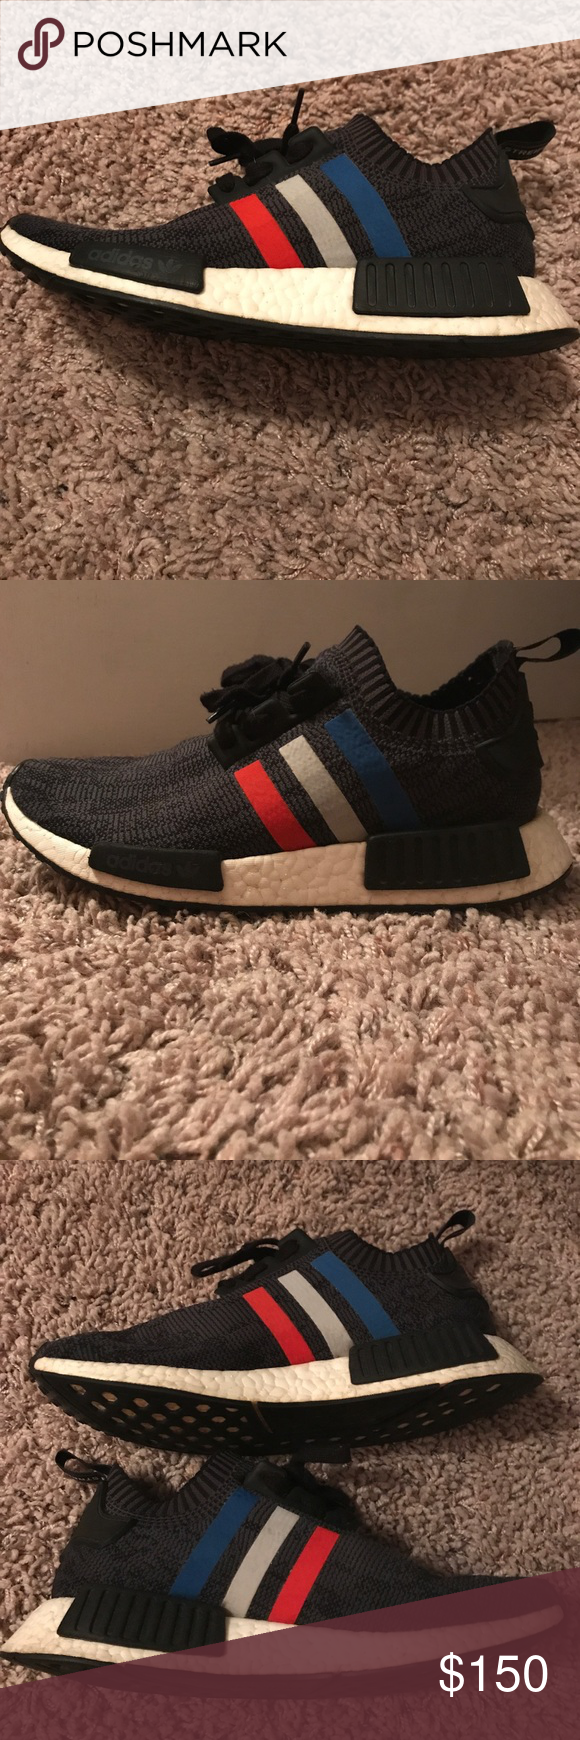 33594b05b930 Adidas nmd r1 pk Used but in great condition. Bought at hibbett sports and  receipt is included. 100% authentic Shoes Sneakers